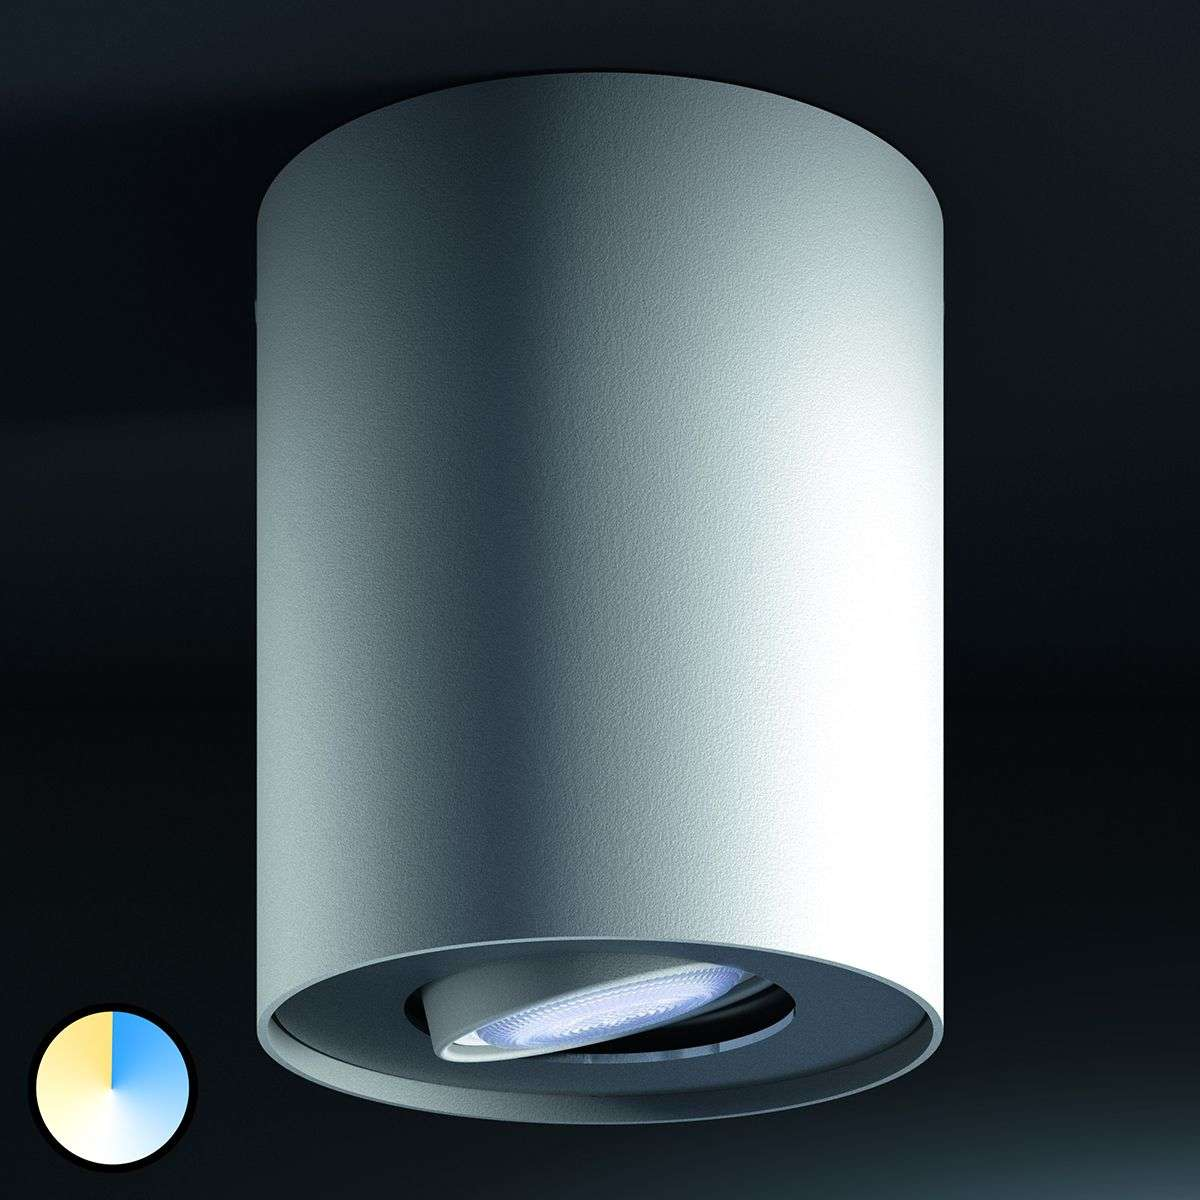 pillar philips hue led spotlight w dimmer switch. Black Bedroom Furniture Sets. Home Design Ideas